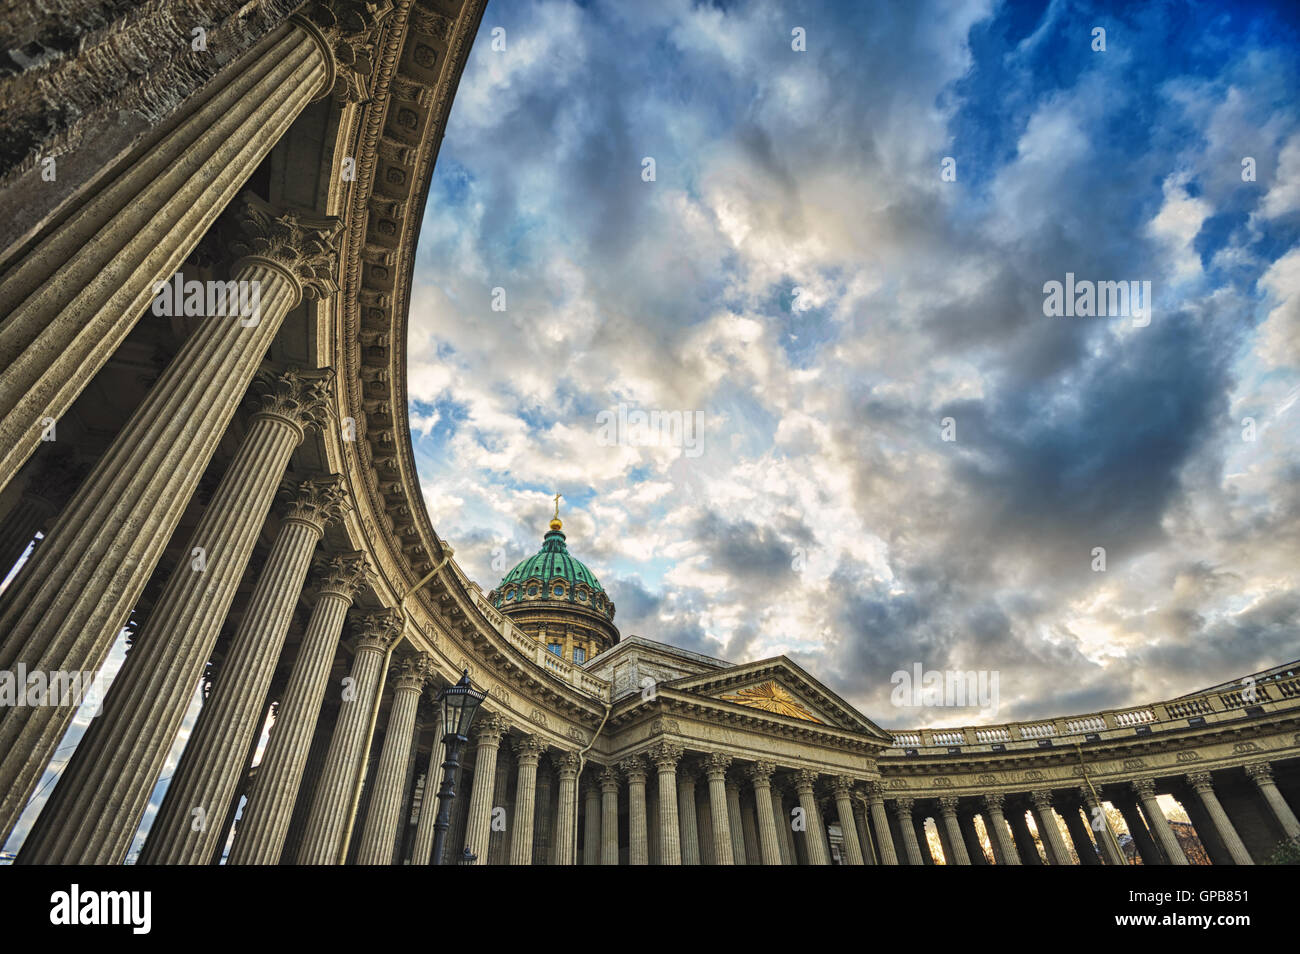 Galerie colonne de la Cathédrale de Kazan, Saint-Pétersbourg, Russie Photo Stock